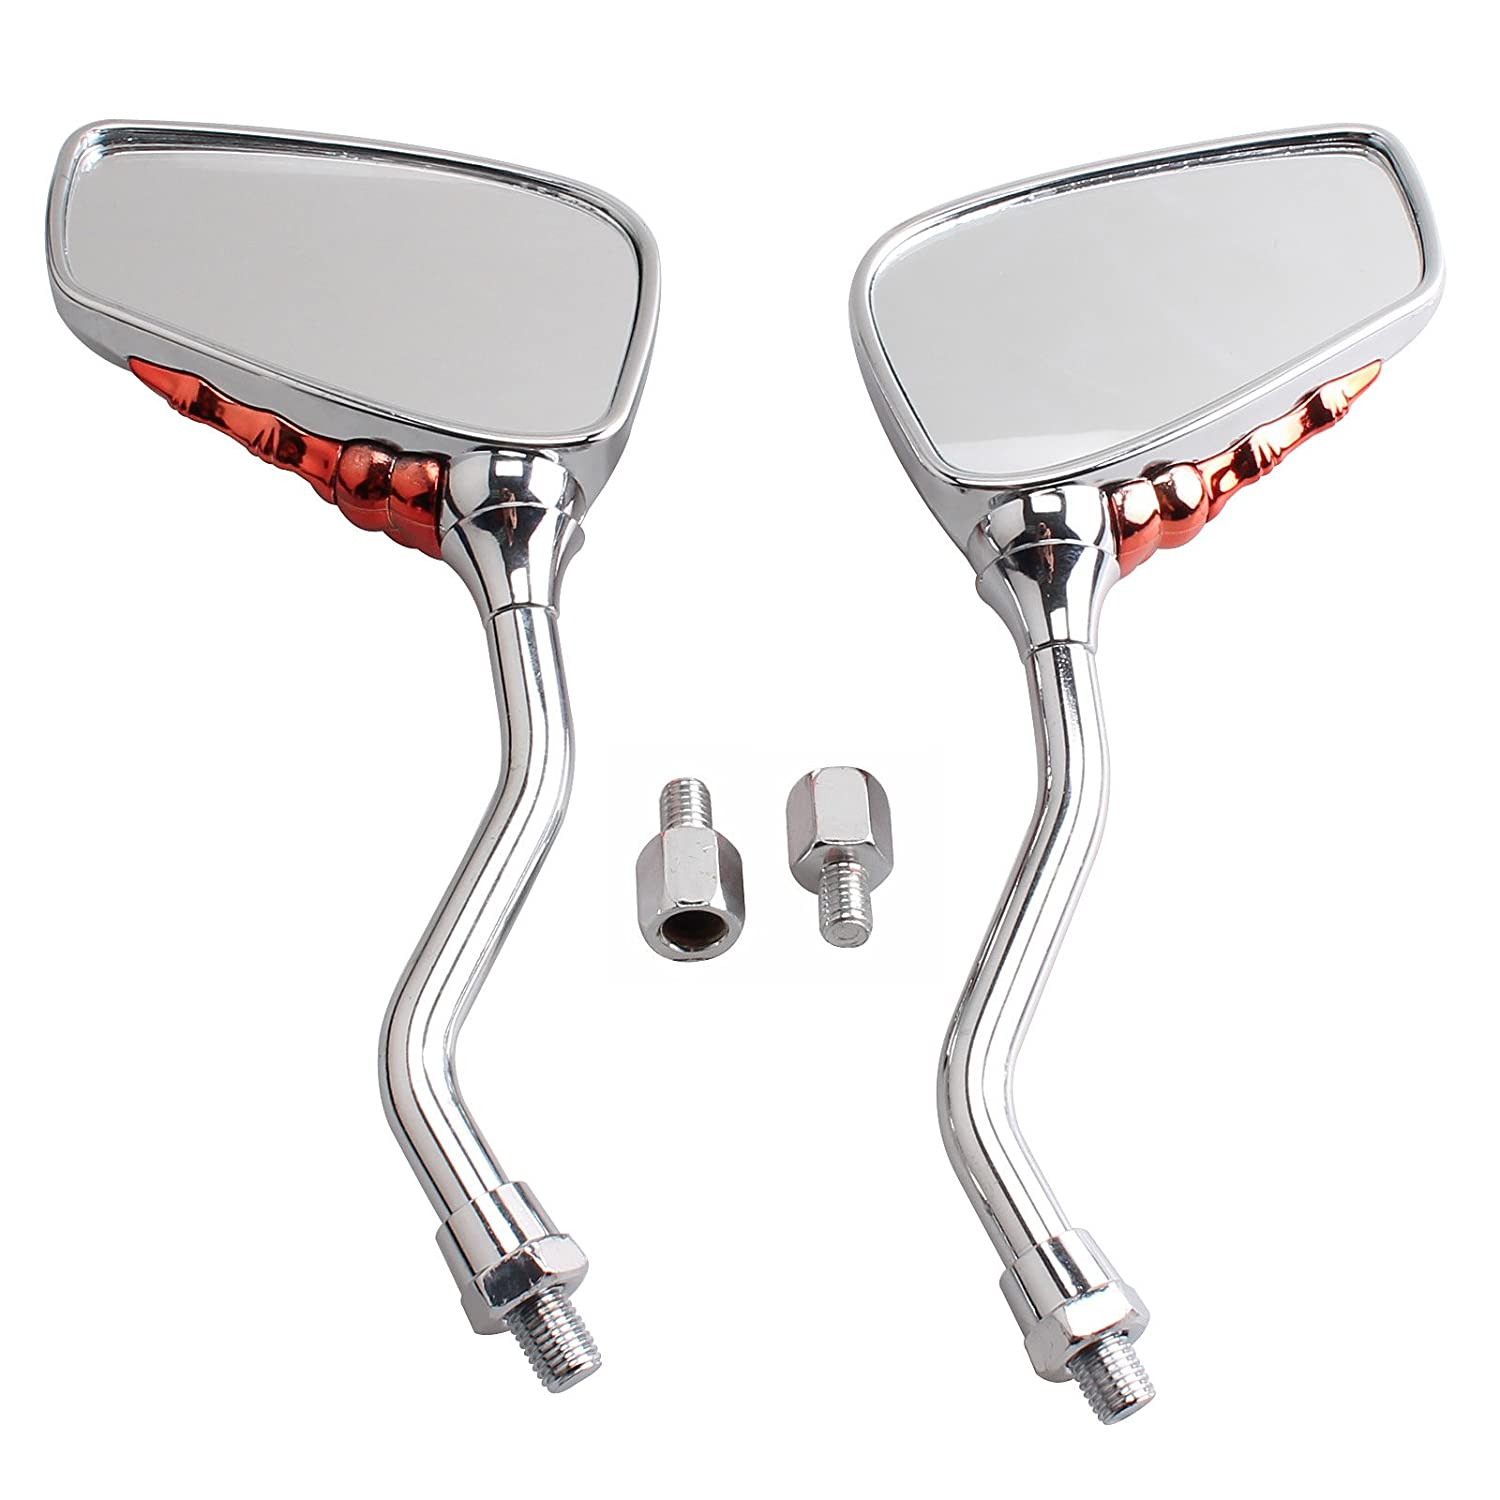 Universal Fit Chrome Skull Skeleton Side Mirrors Rare Mirror for Motorcycle Moto Bike 10mm 8mm Thread Bolts For Suzuki Honda Kawasaki Yamaha Victory red